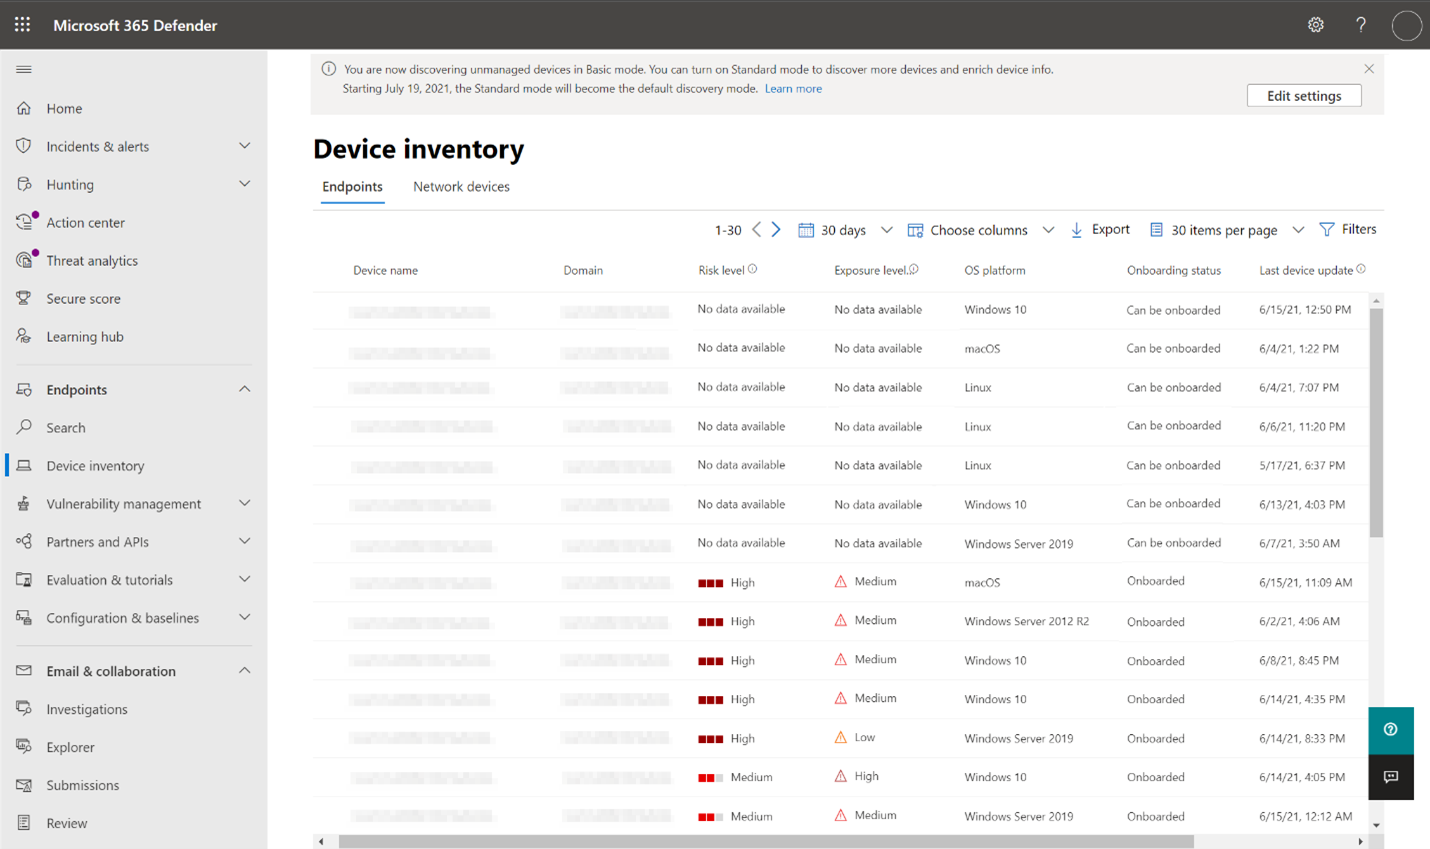 Screenshot of Microsoft 365 Defender showing Device inventory